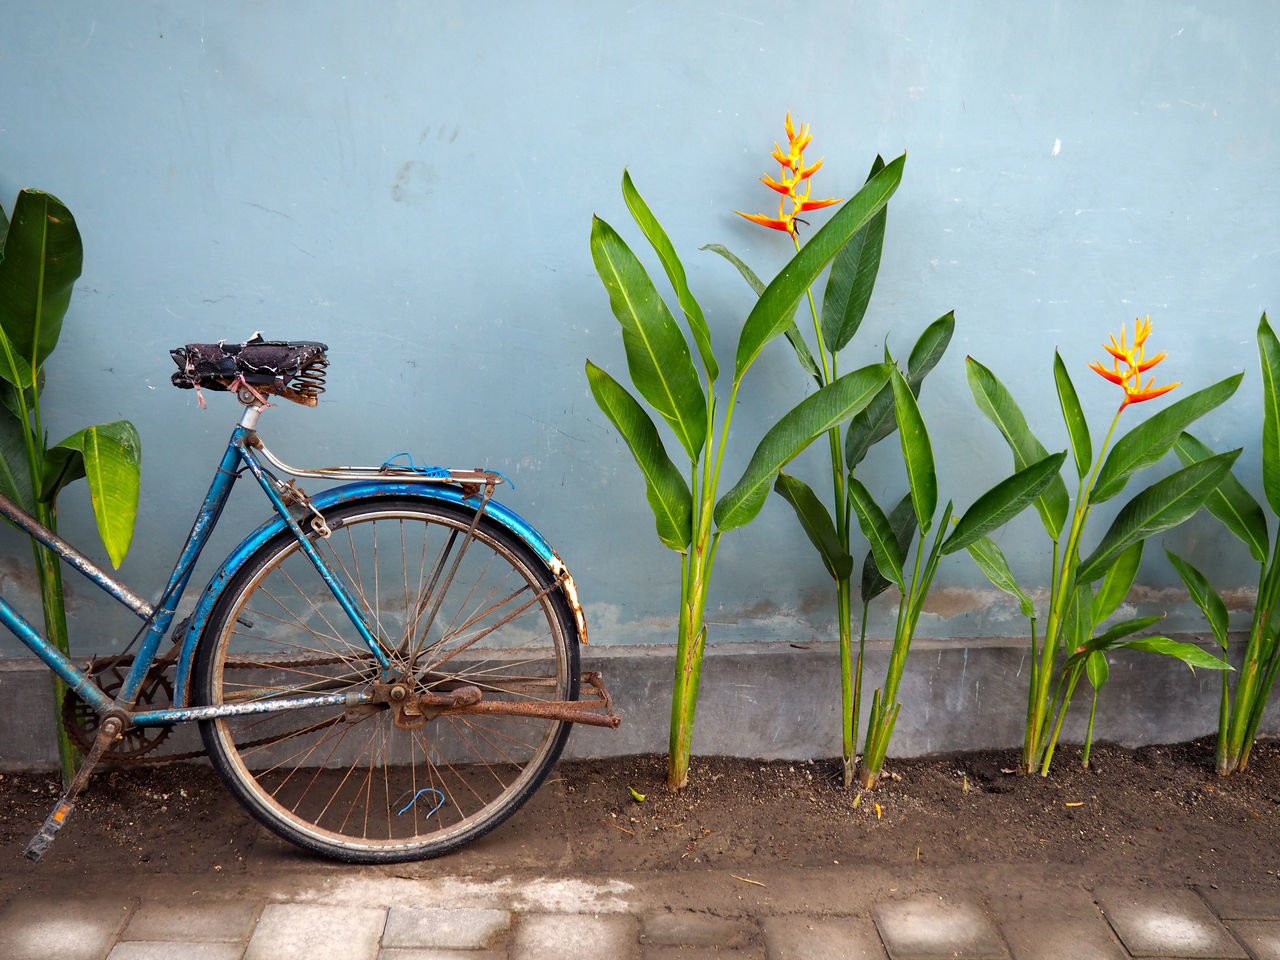 Bicycle Day Green Color Leaf No People Outdoors Parking Plant Potted Plant Stationary Transportation